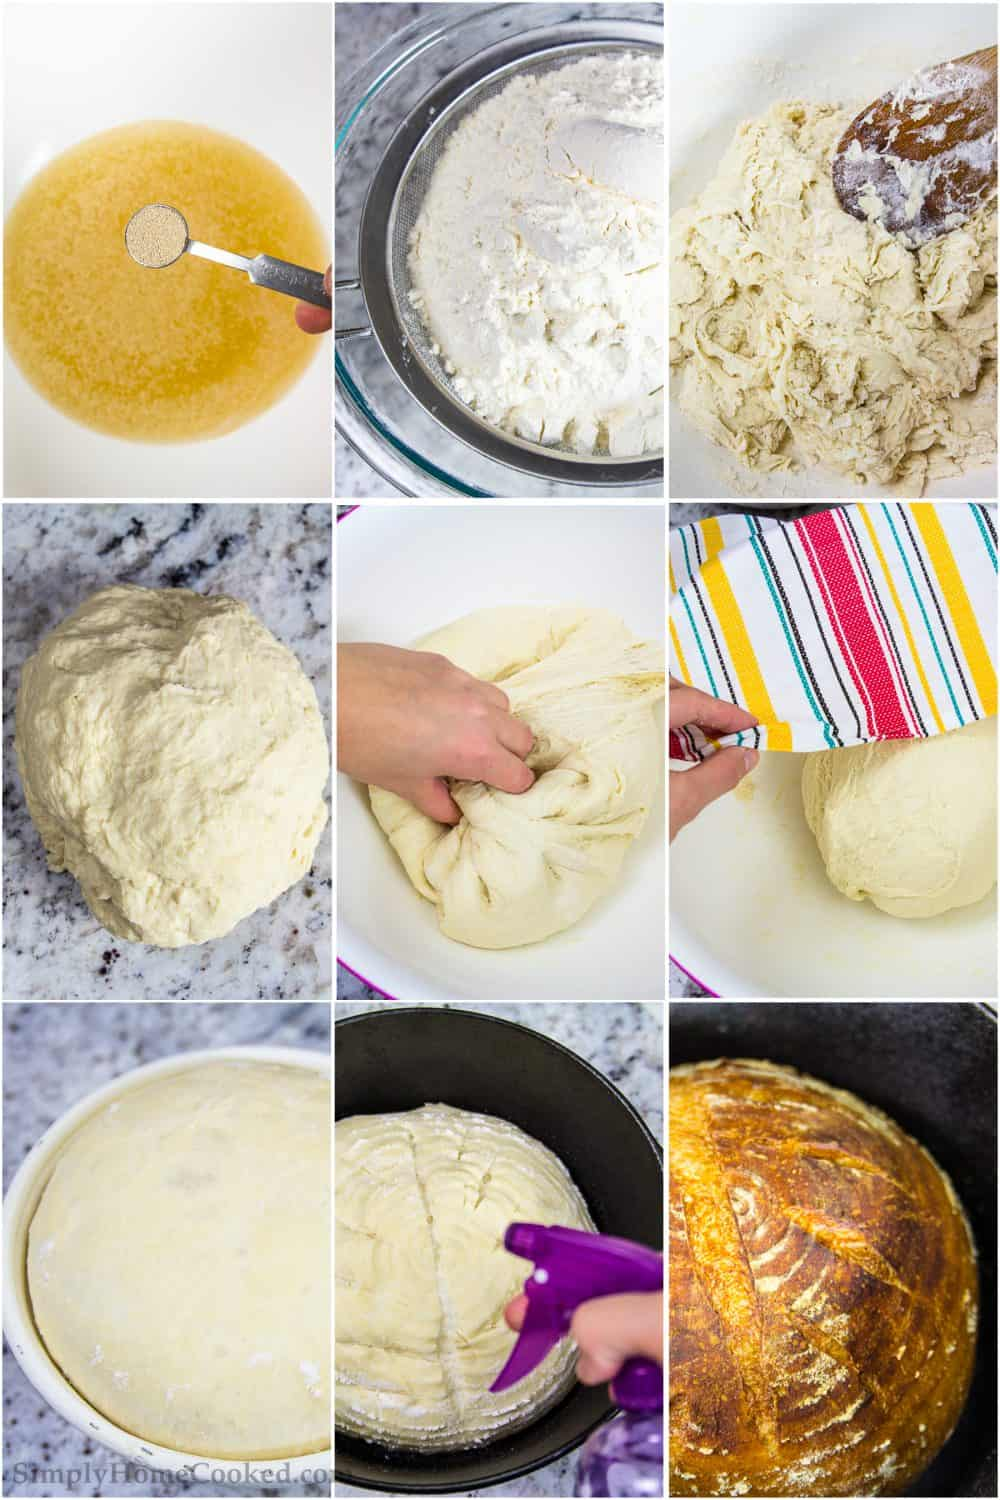 how to make Rustic Bread step by step pictures